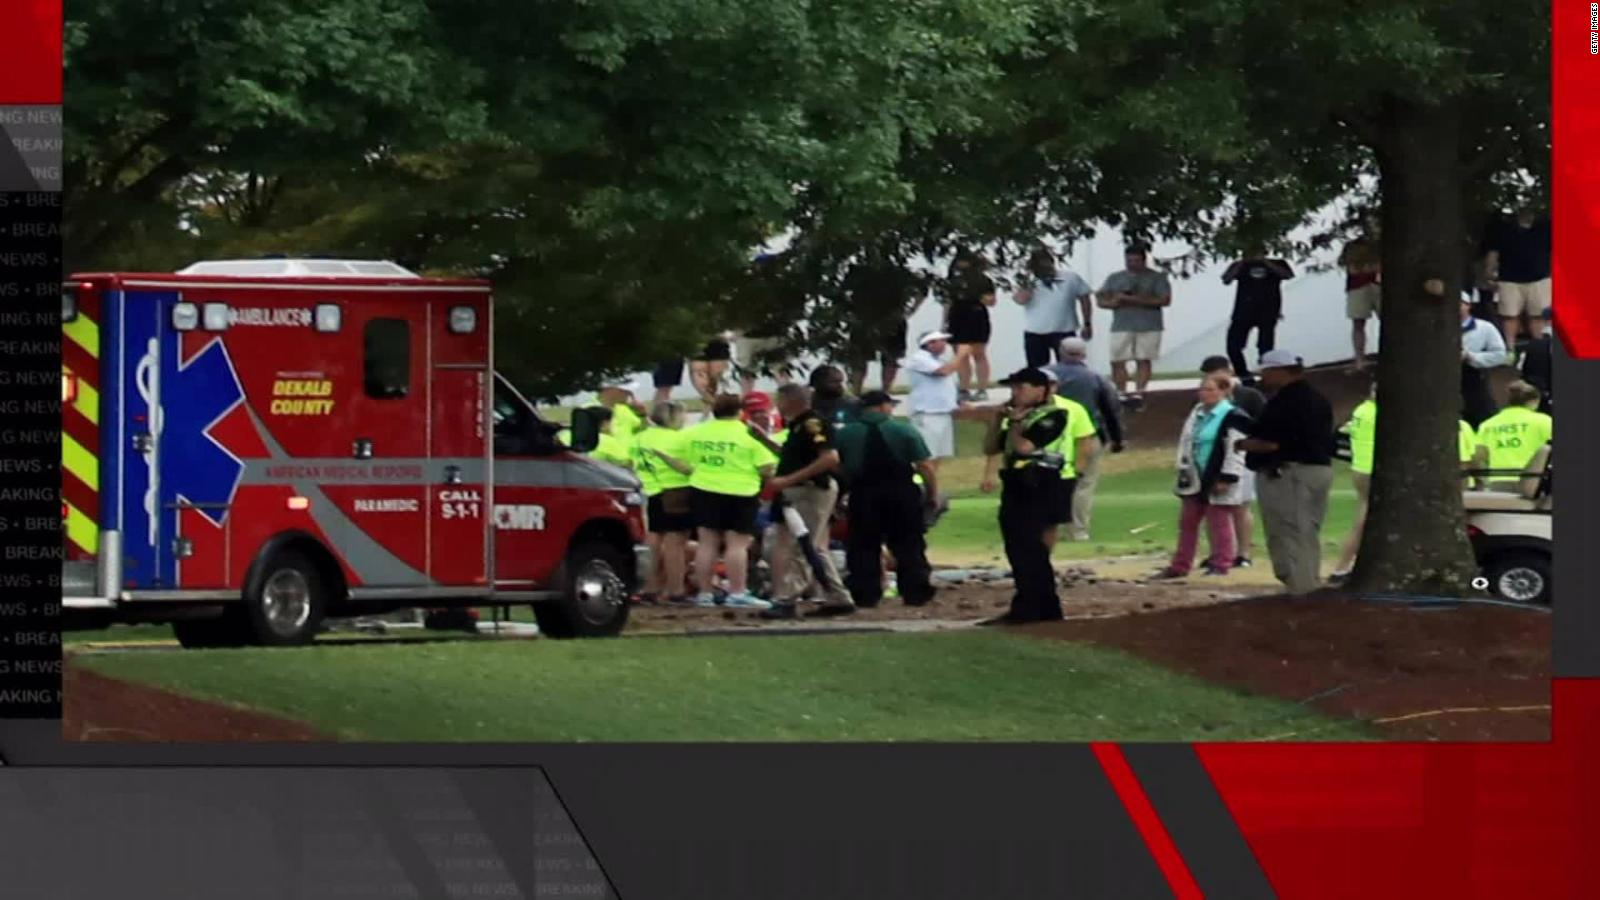 PGA Tour Championship: At least 6 people wounded after